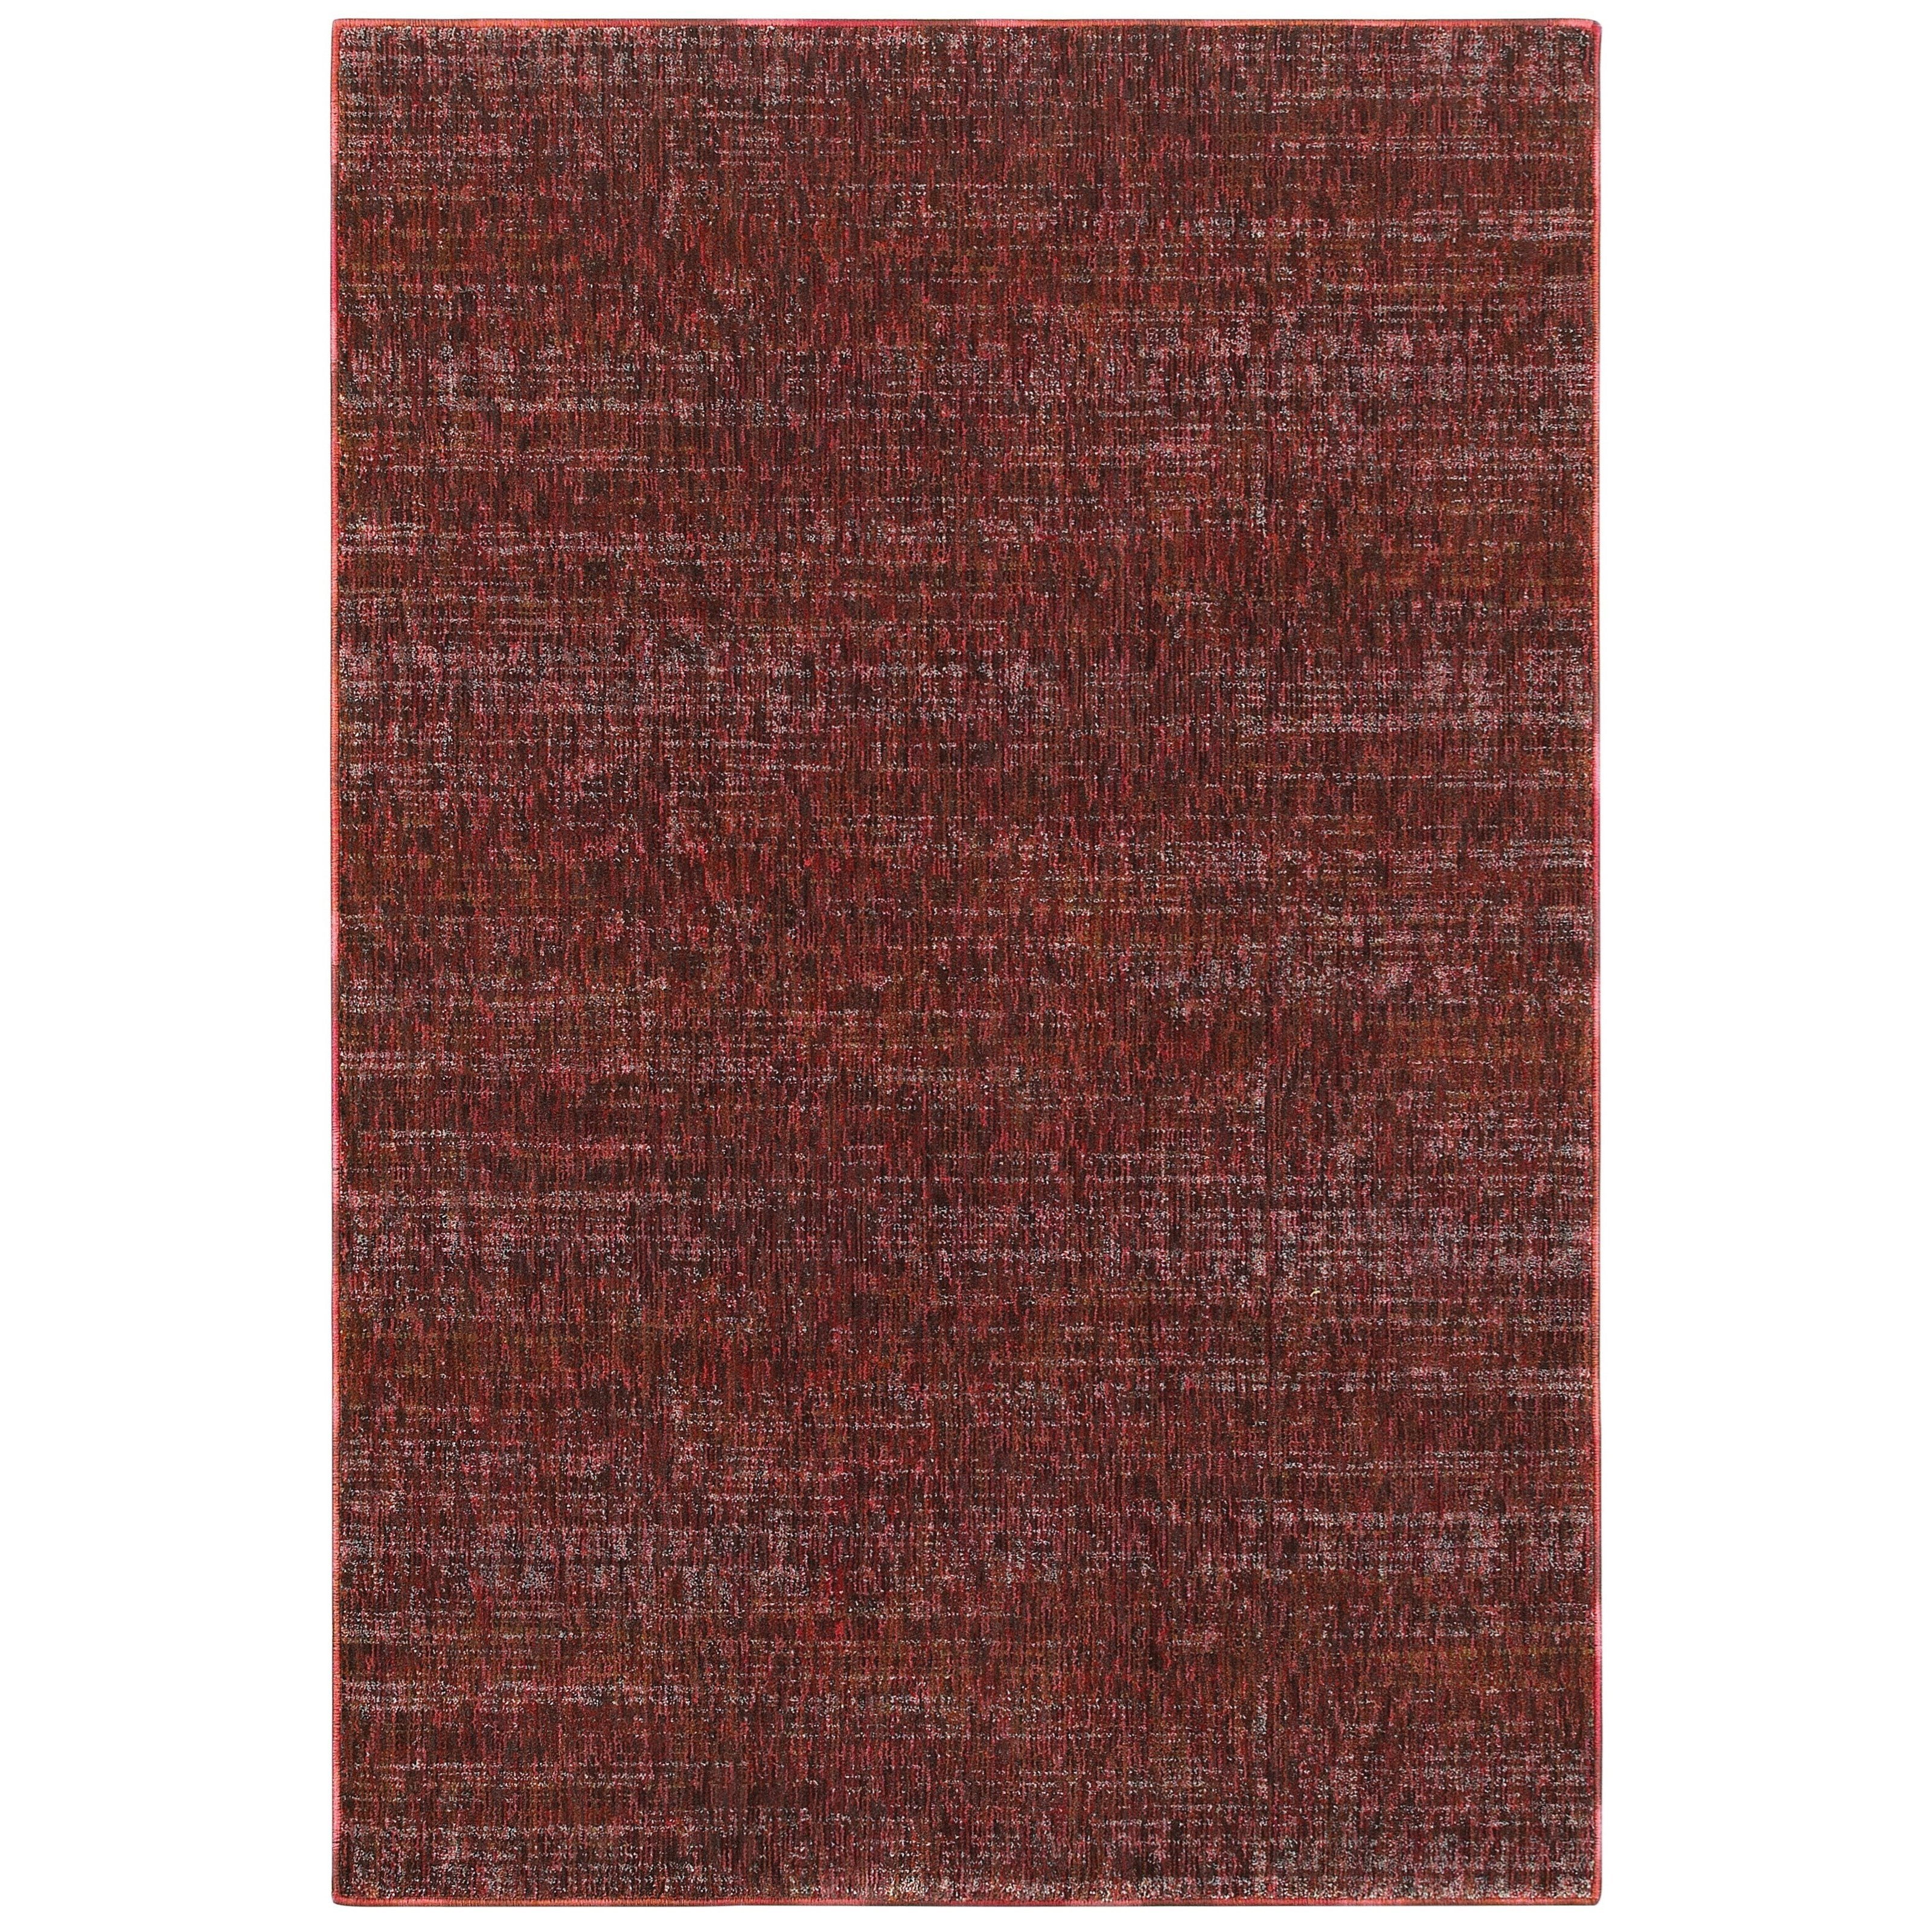 "Atlas 7'10"" X 10'10"" Rectangle Rug by Oriental Weavers at Jacksonville Furniture Mart"